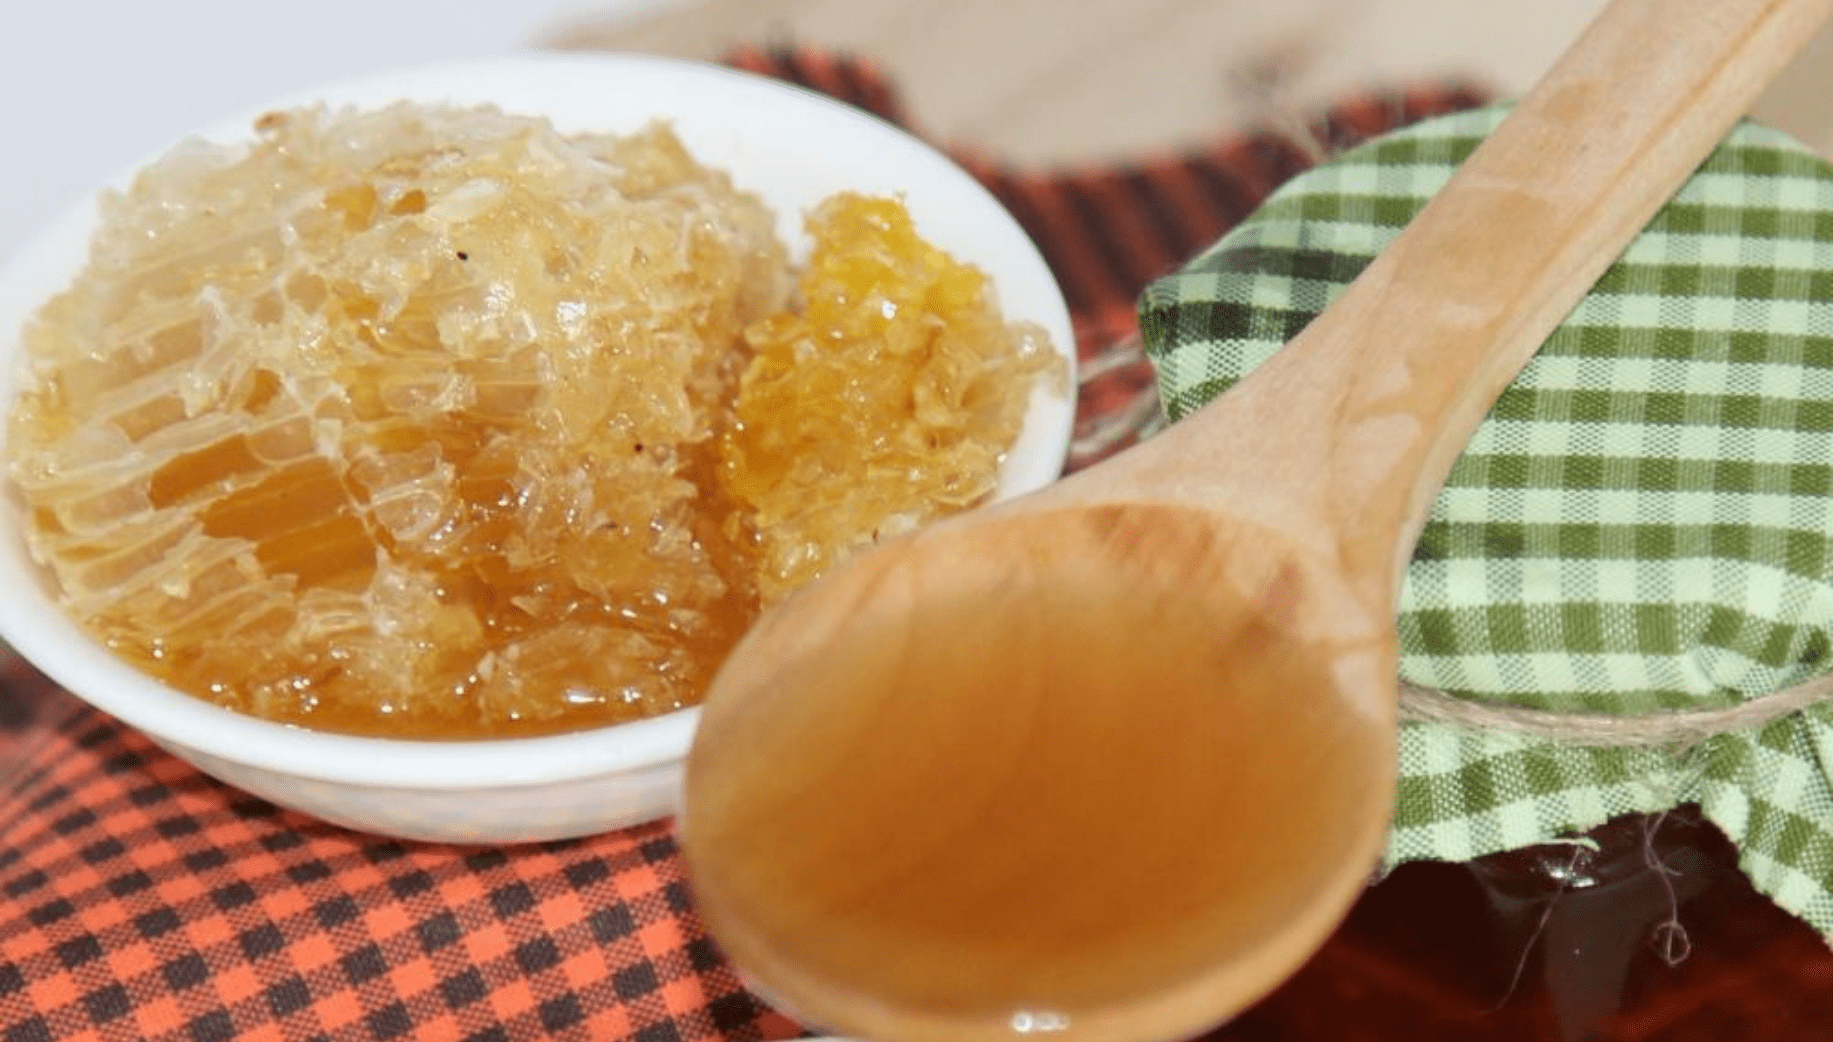 Honey from Meghalaya